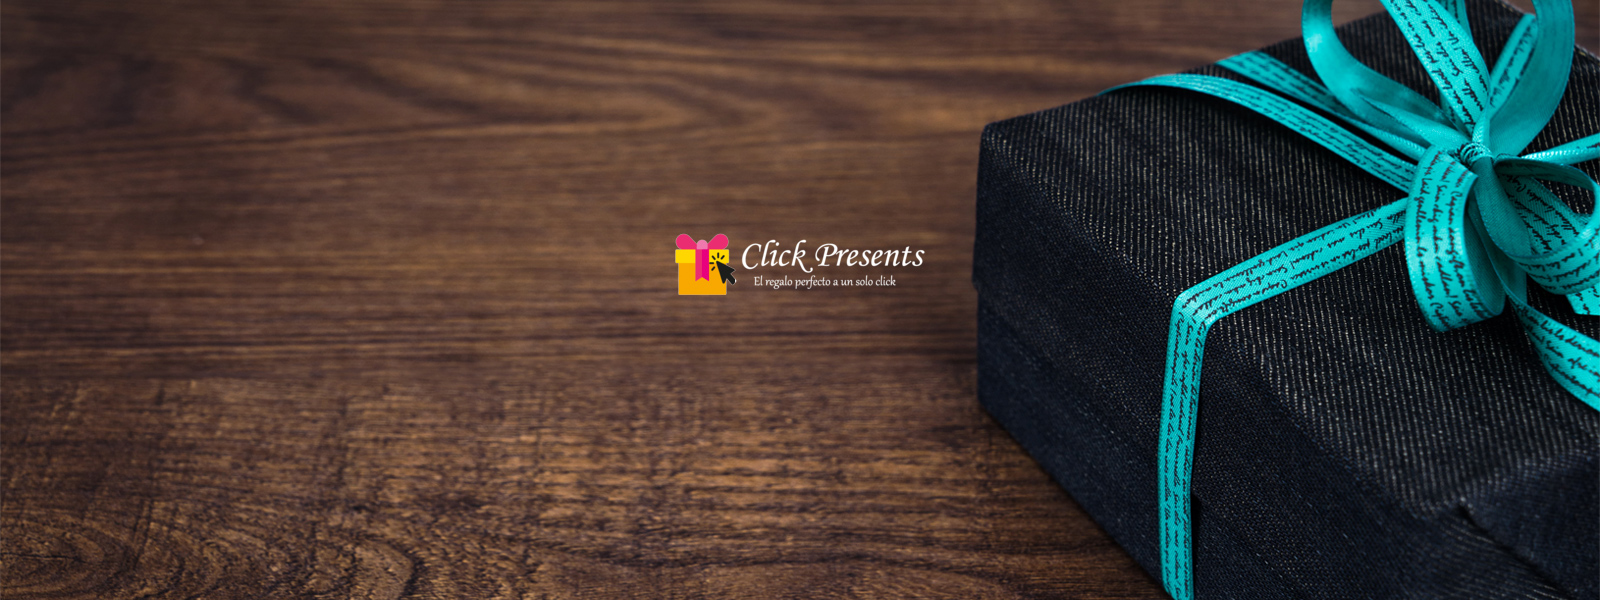 Click Presents image